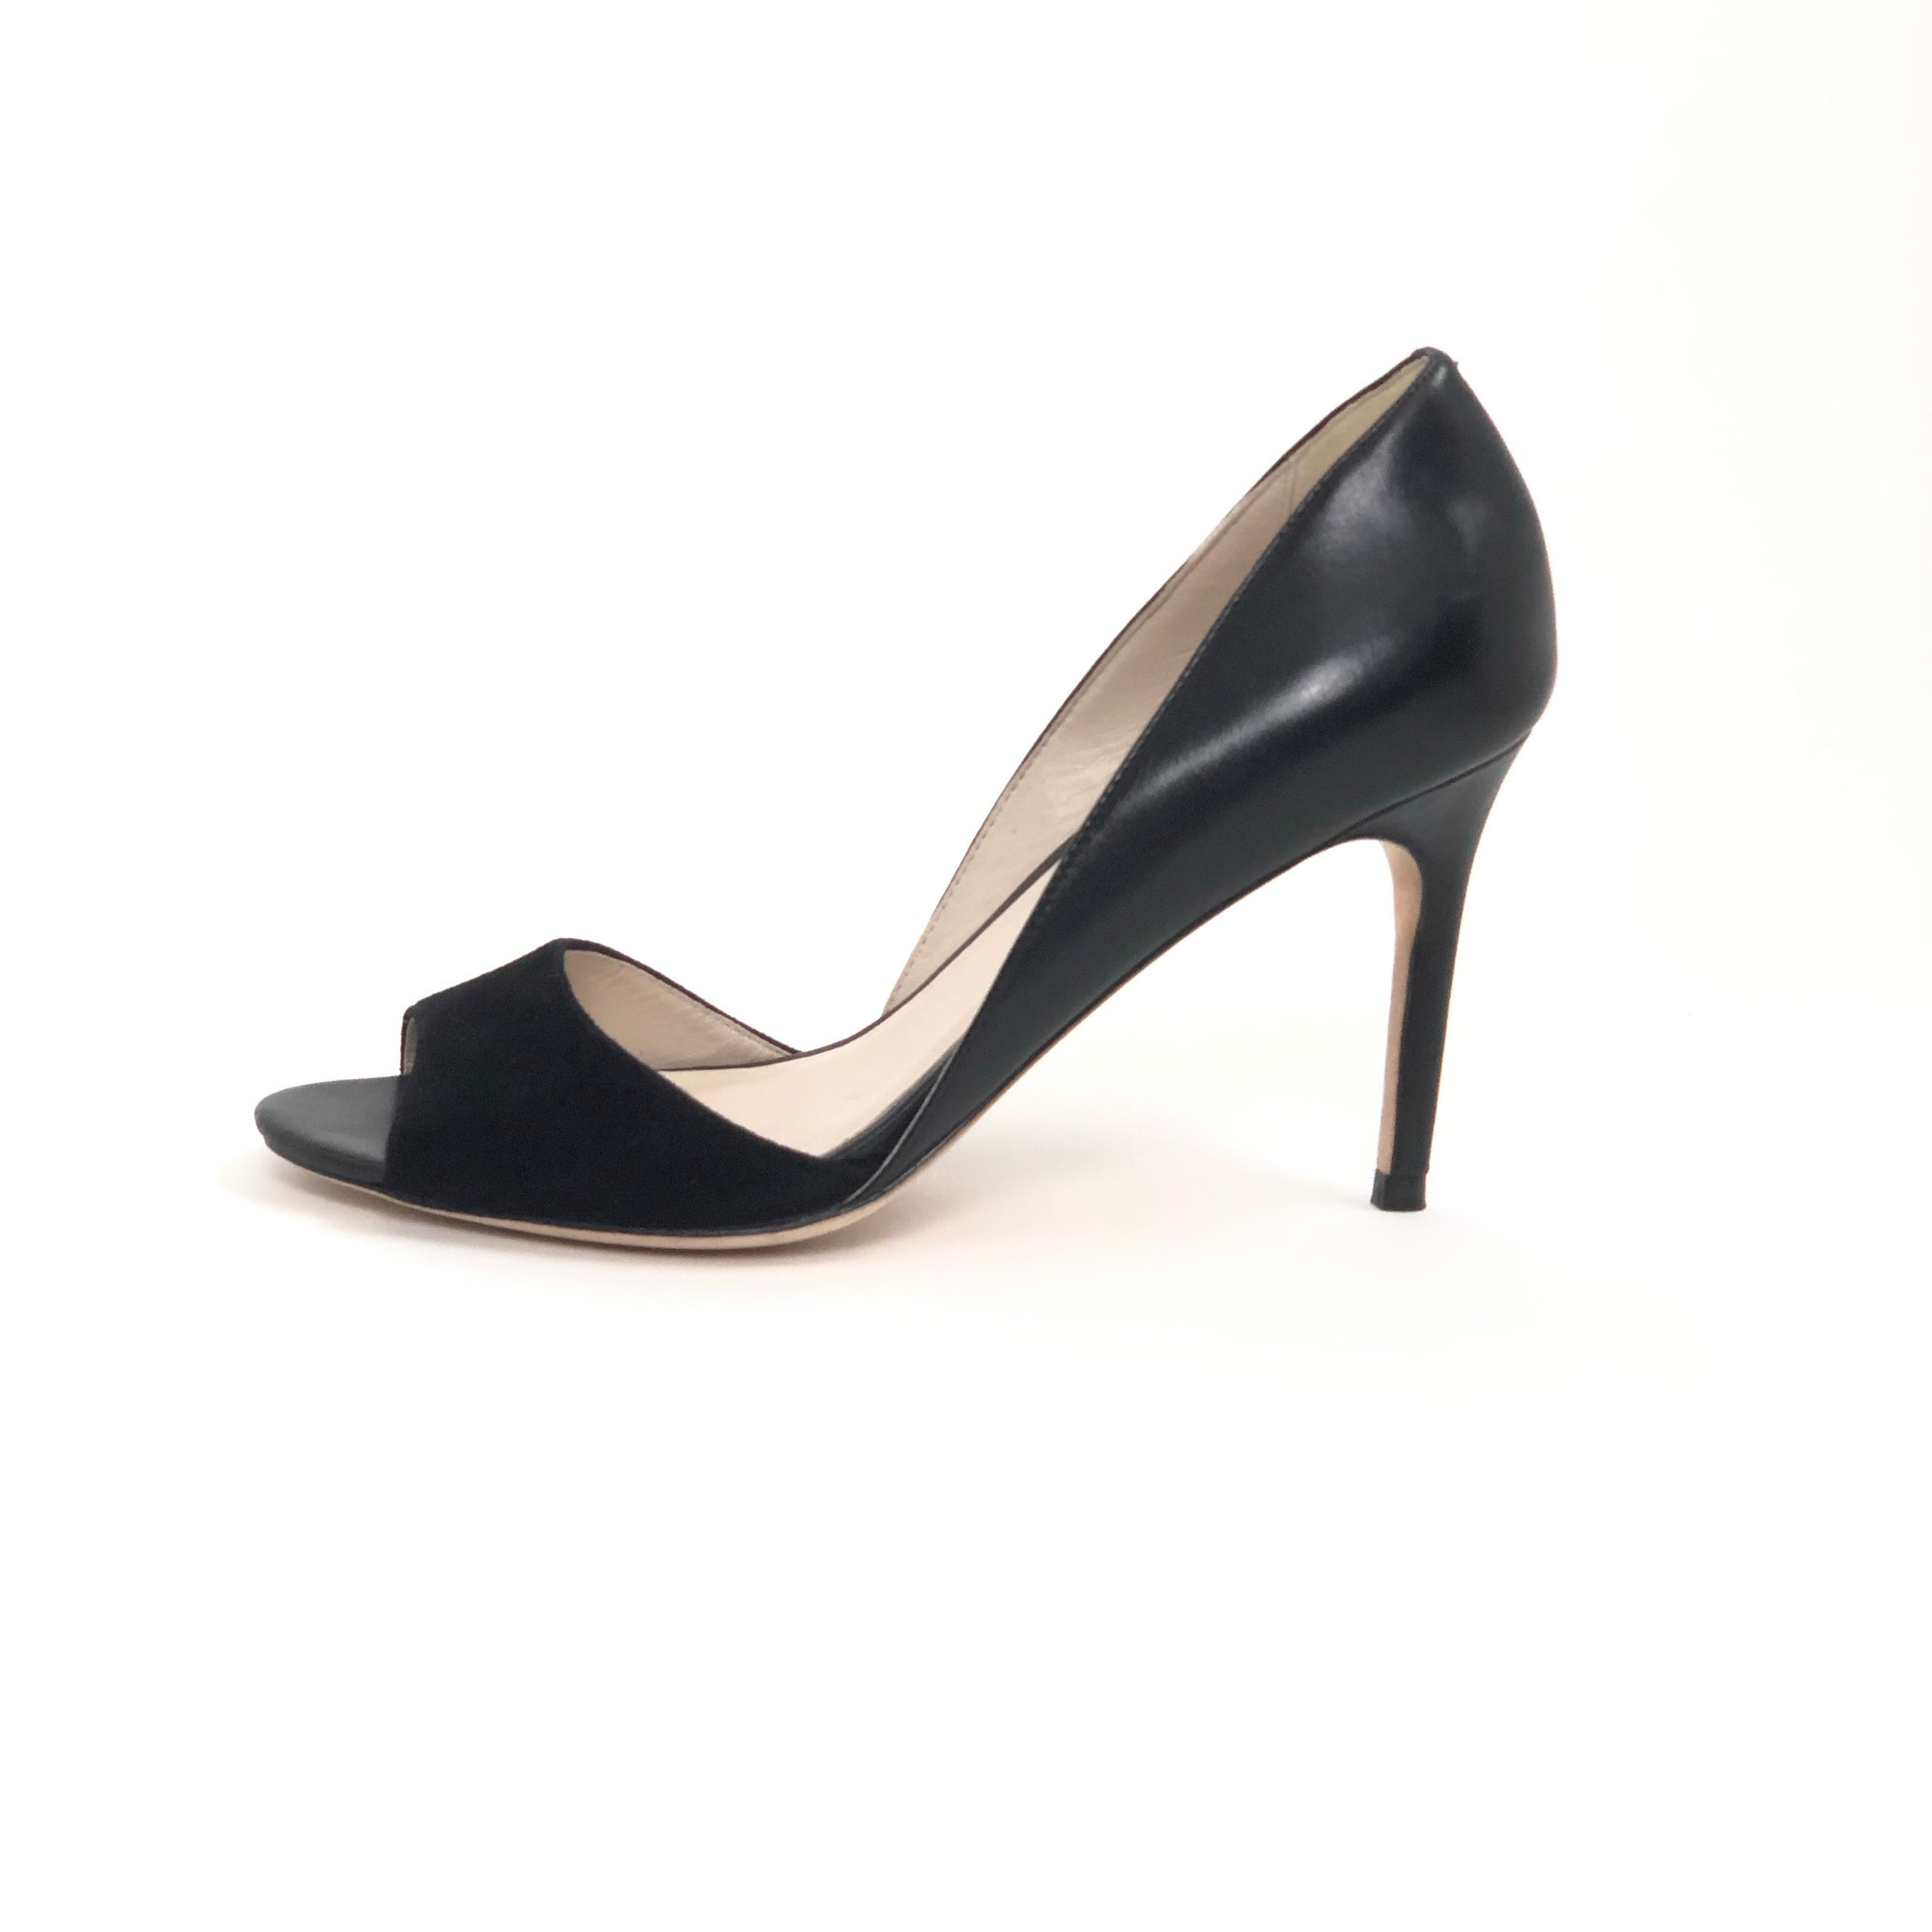 Cole Haan Antonia OT Pump Black, Size 6.5